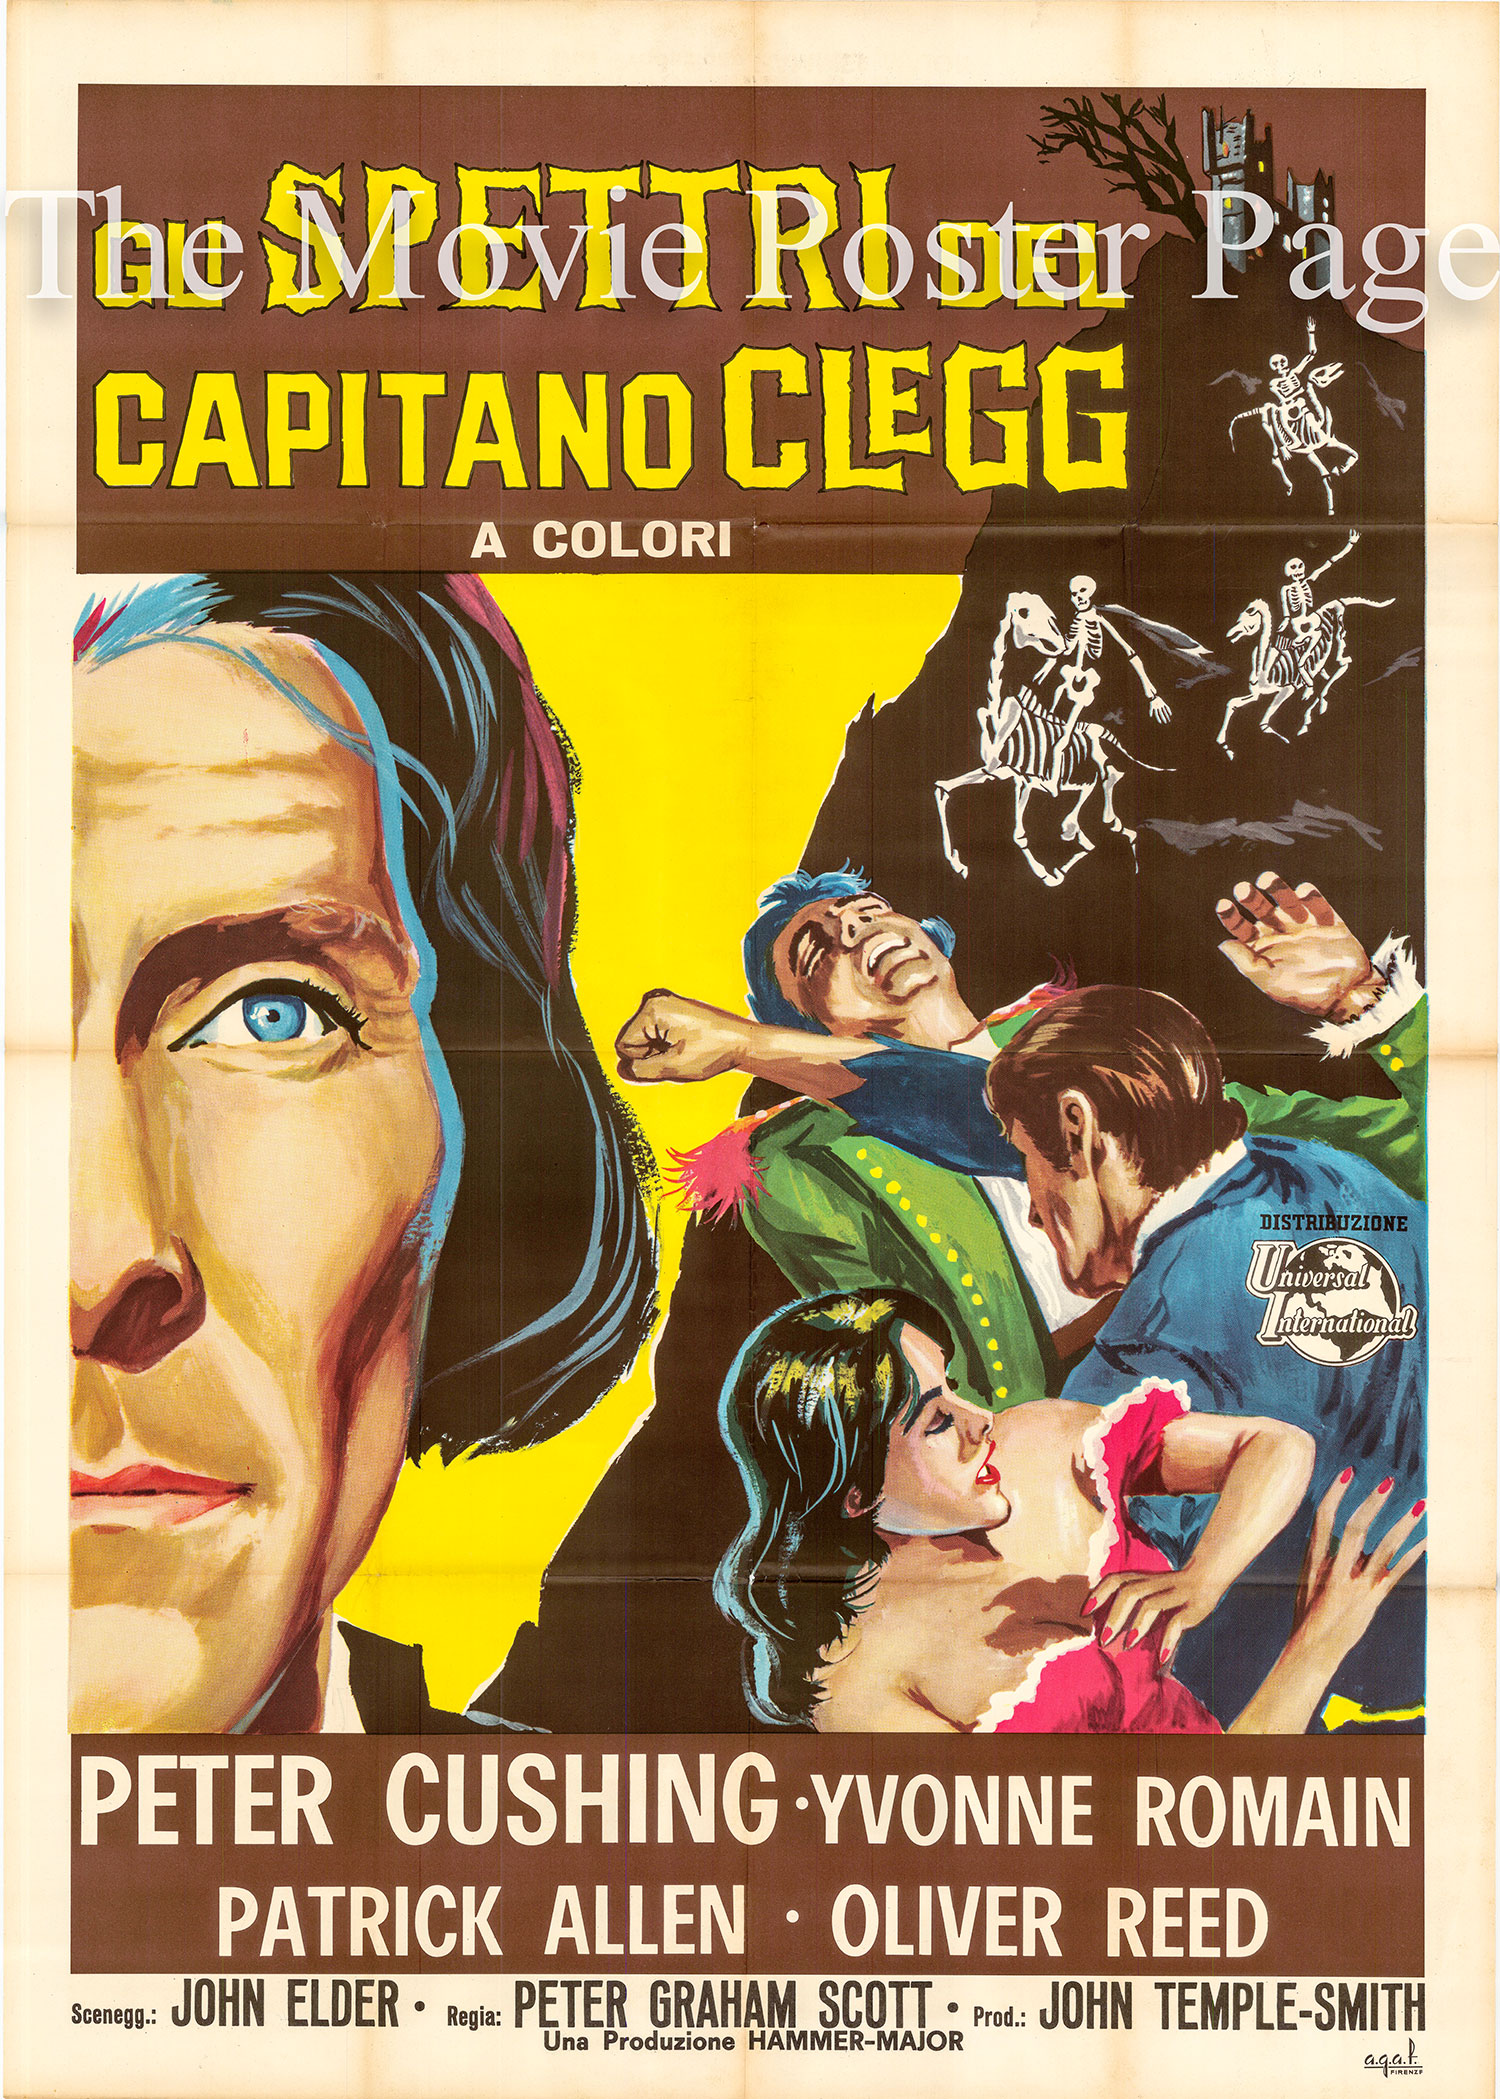 Pictured is an Italian two-sheet poster made to promote the 1962 Peter Graham Scott film Captain Clegg starring Peter Cushing.